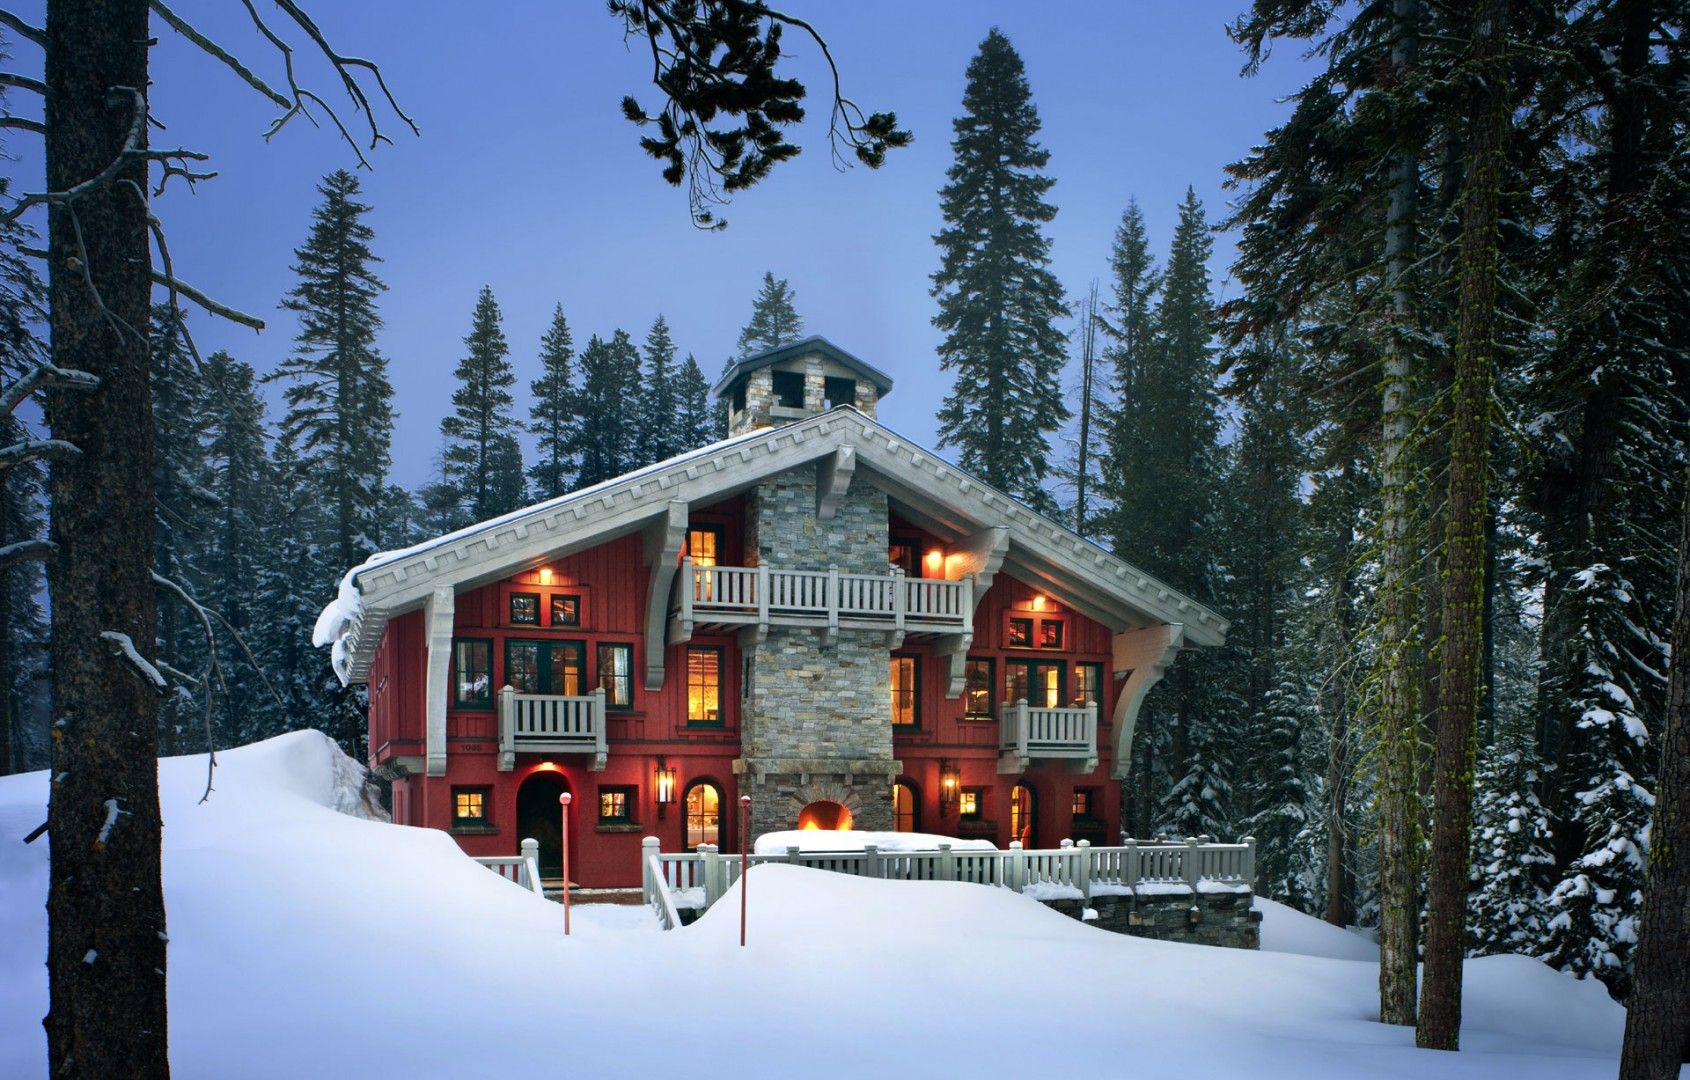 Alpine Ski Chalet- House in Snow / Architect: John Malick & Associates /  Photograph